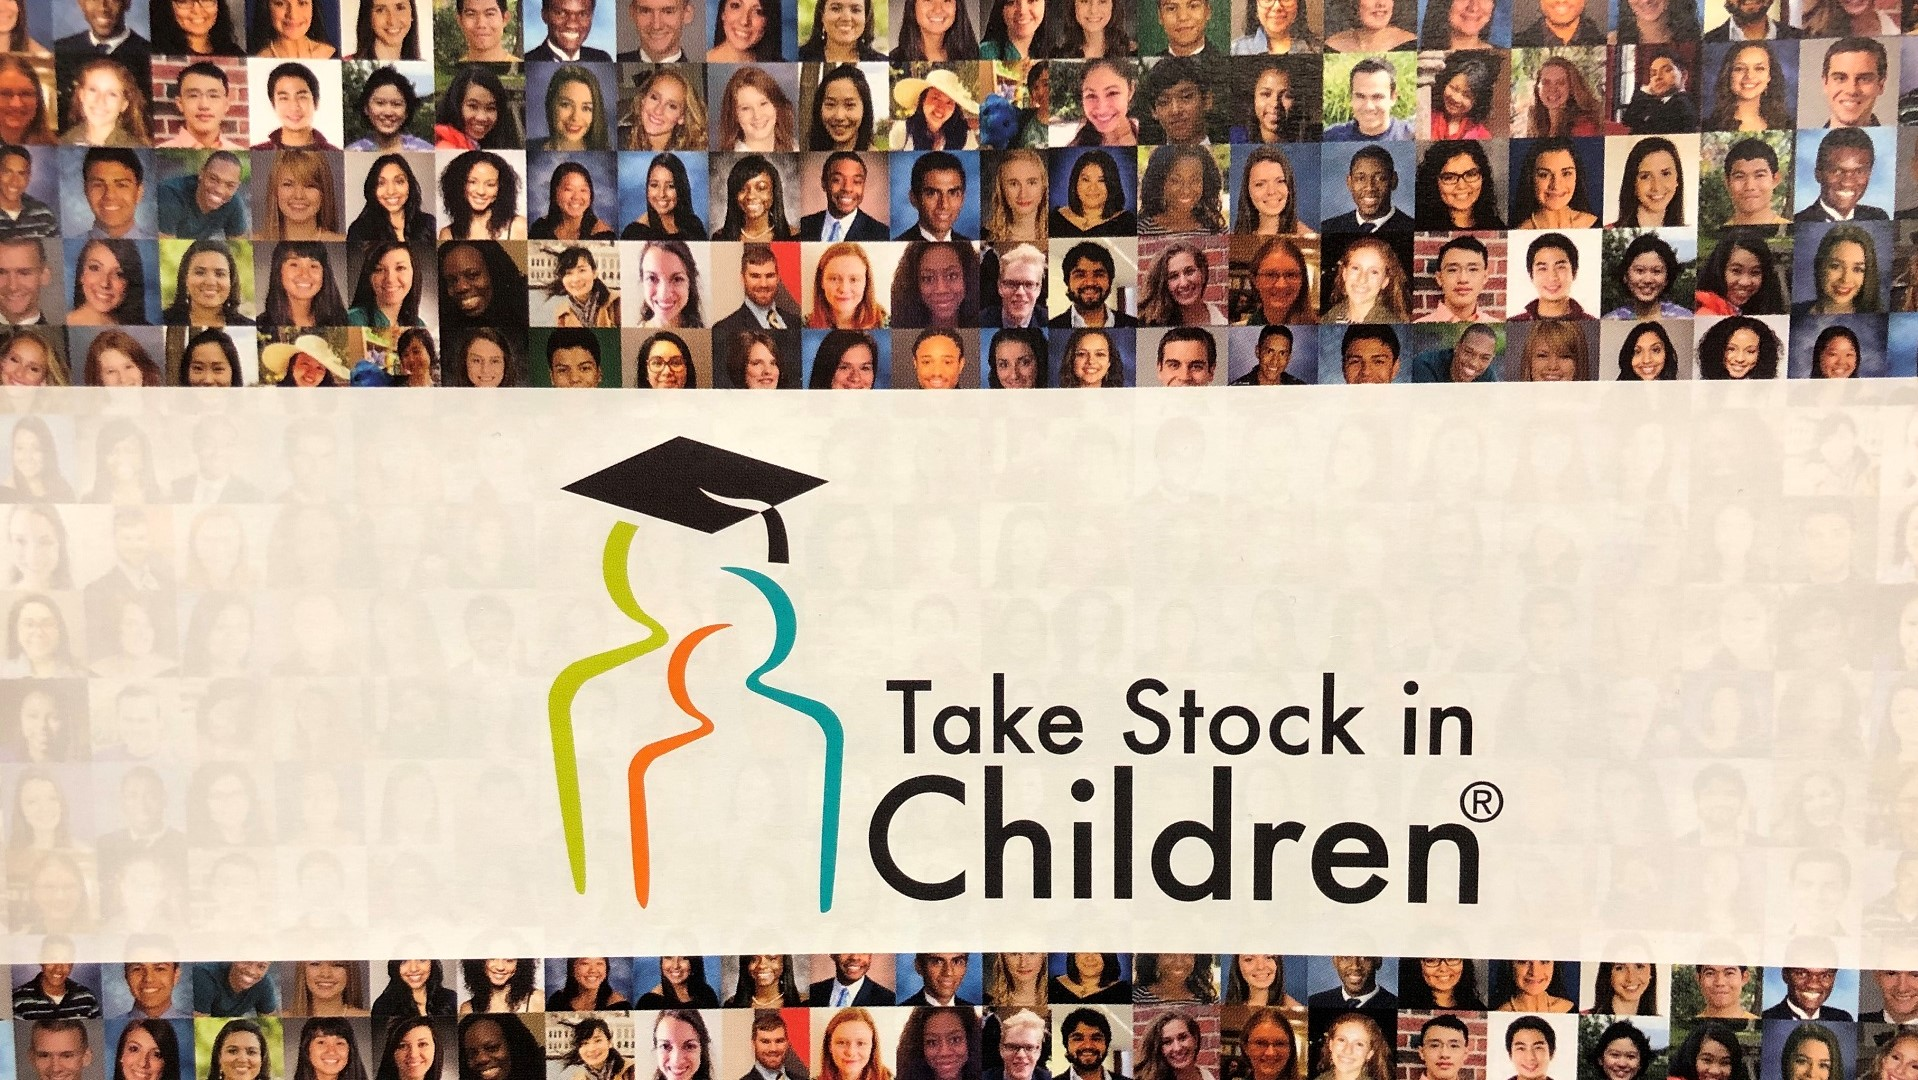 Header for the Take Stock in Children program. Has the name of the program with a mural of graduates.